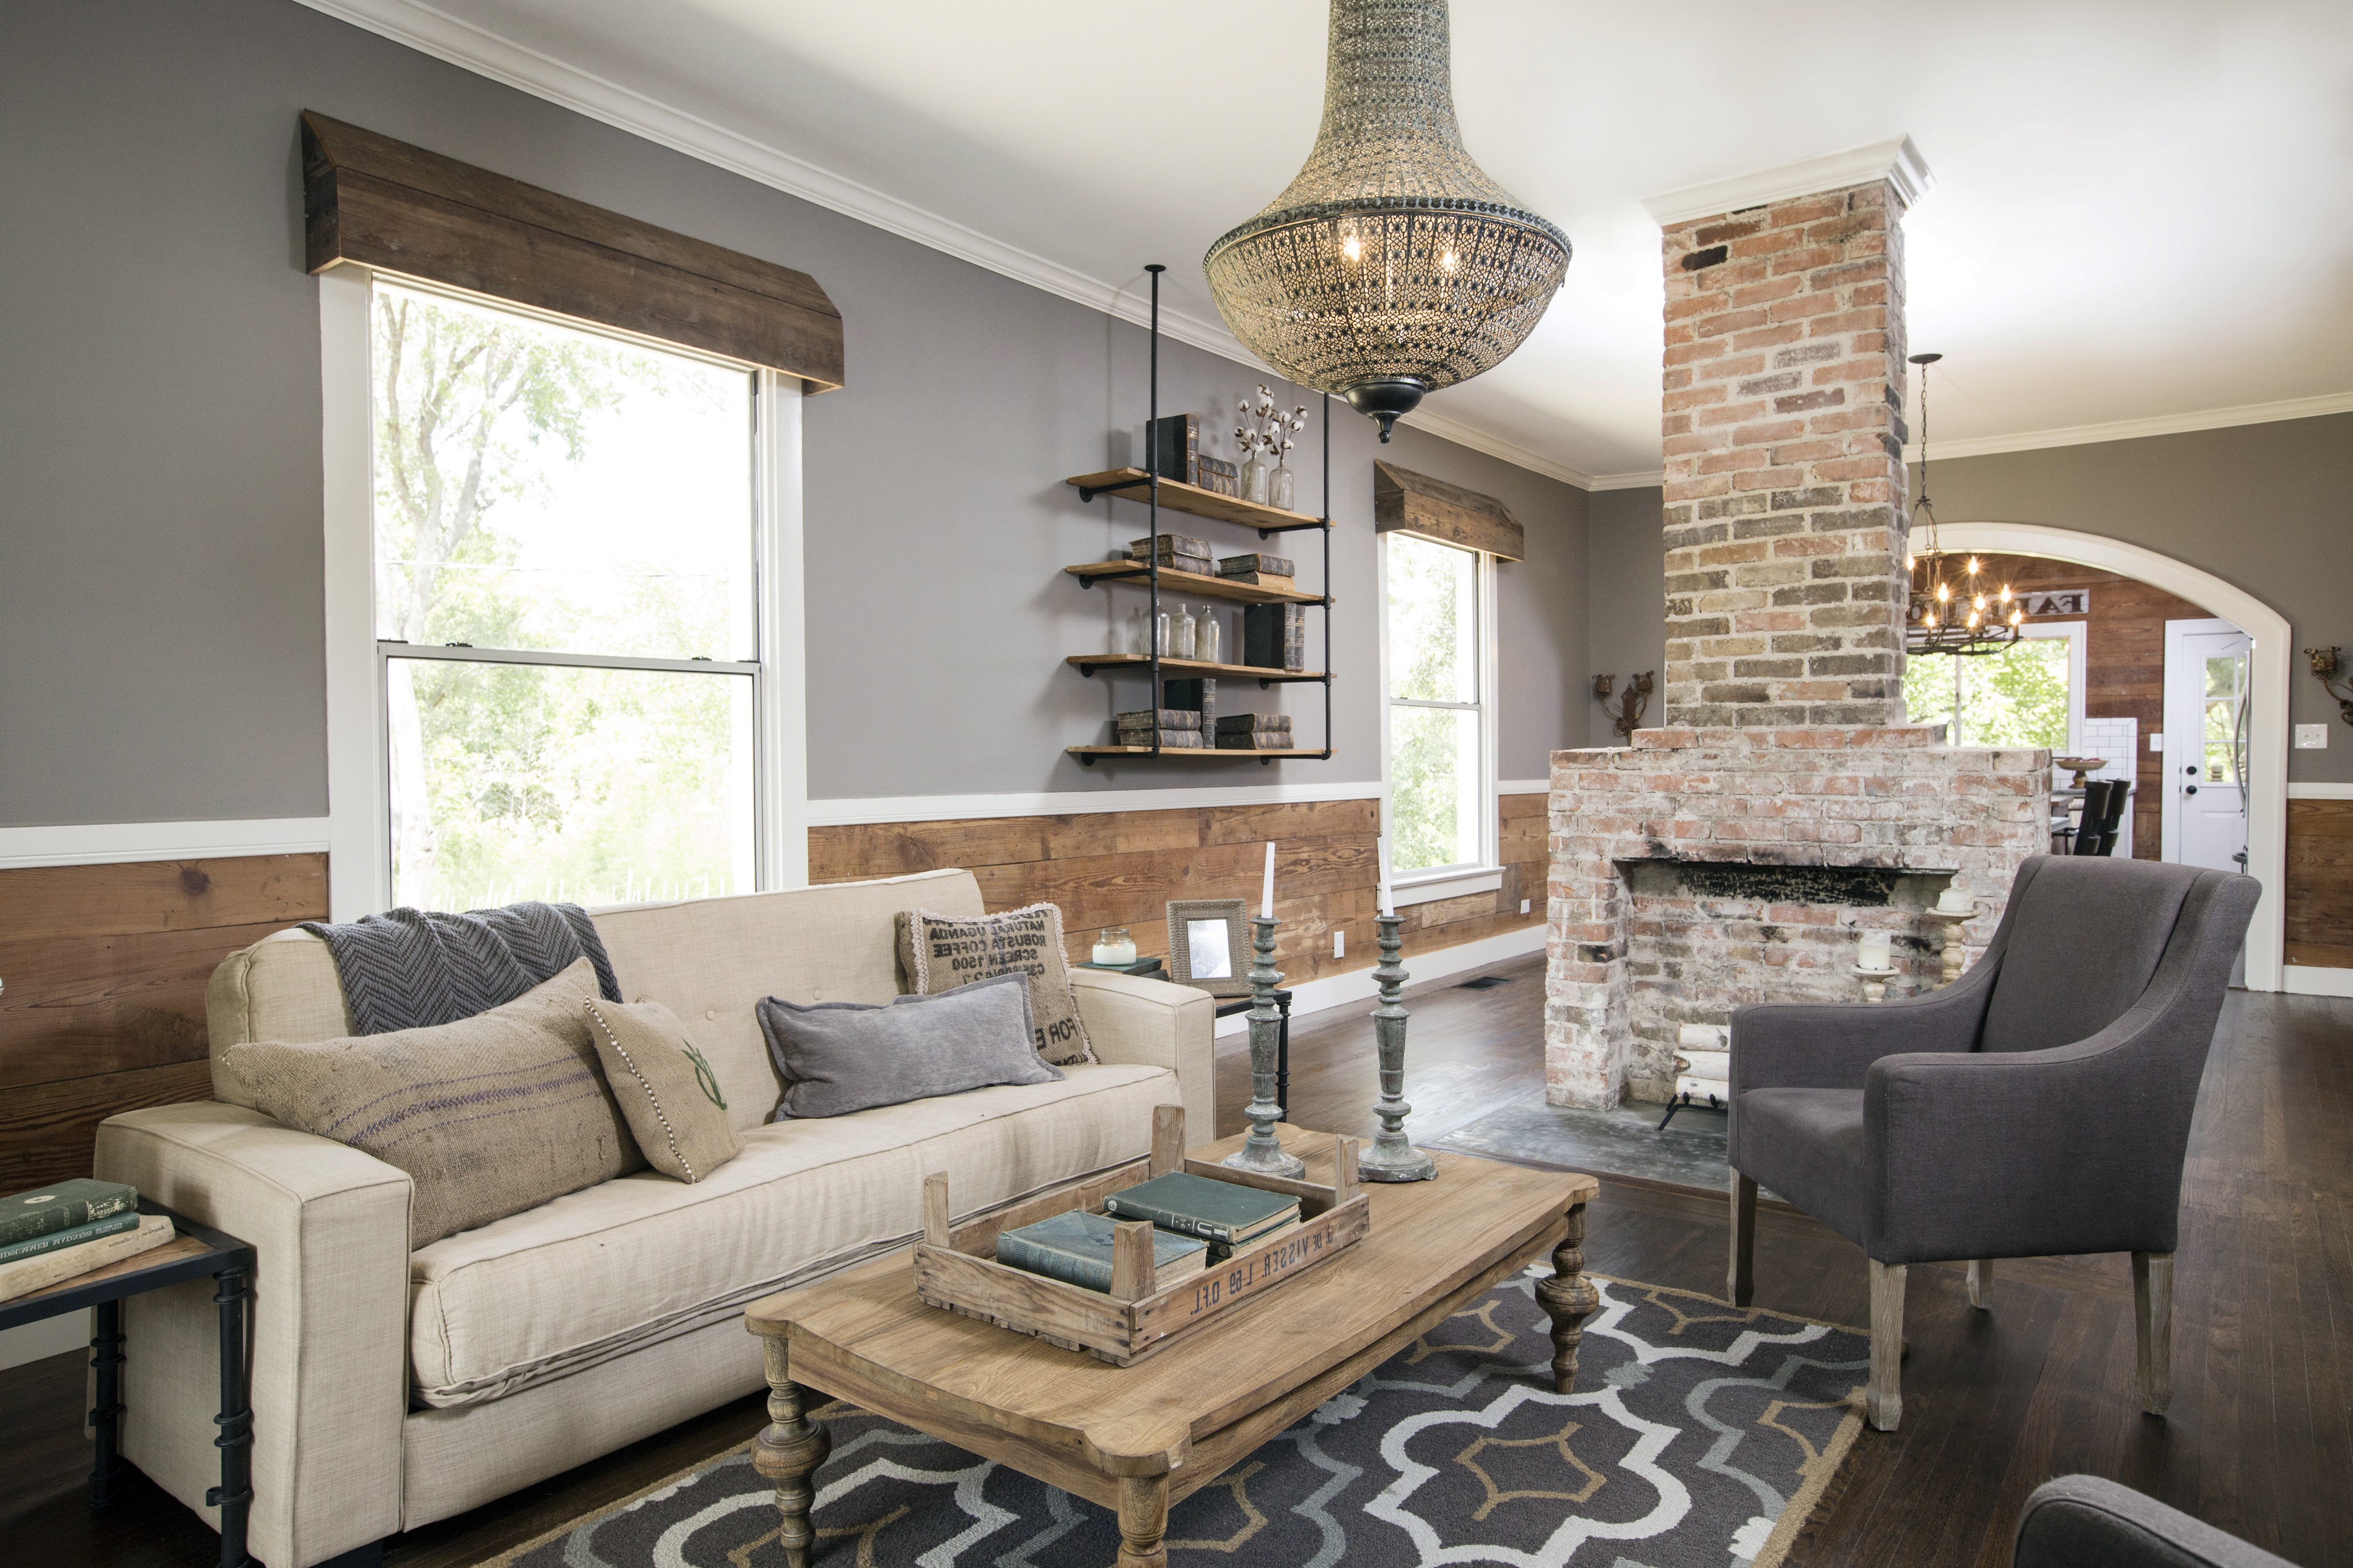 Rustic Dining Room And Living Room Interior 16059